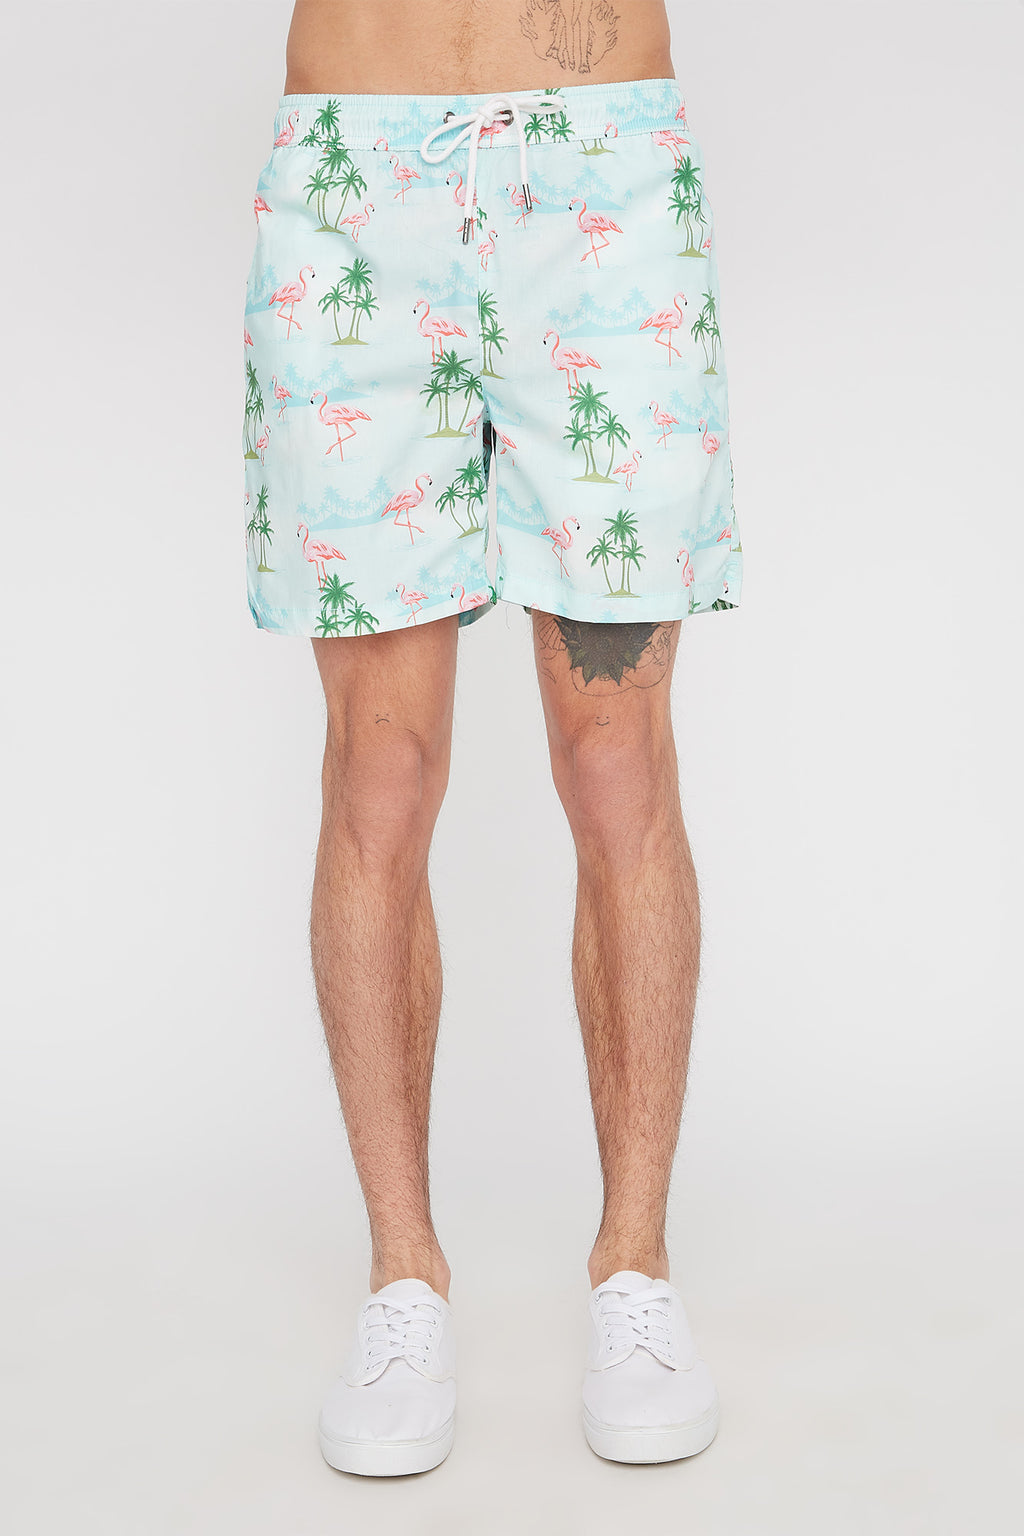 Zoo York Mens Flamingo Board Shorts